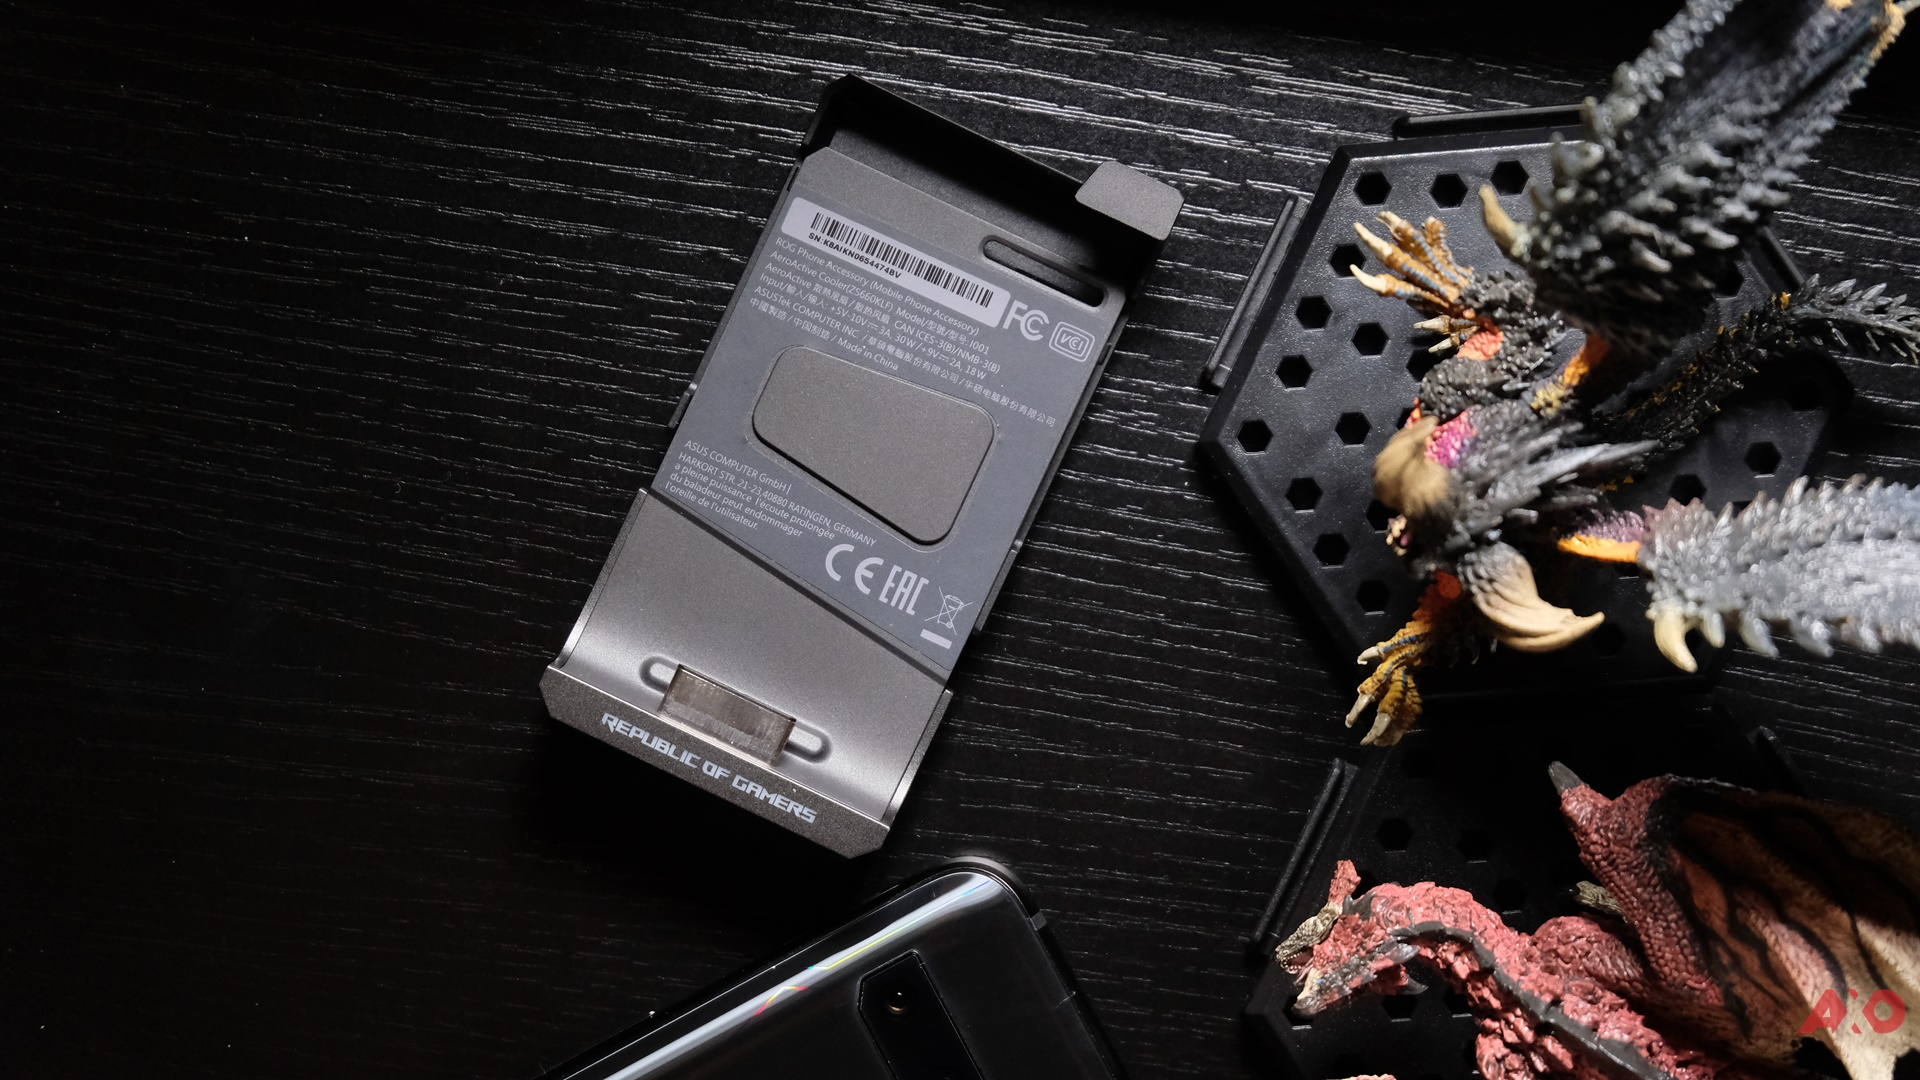 Straight to the Point: Asus ROG Phone 2 - An AXO Review 32